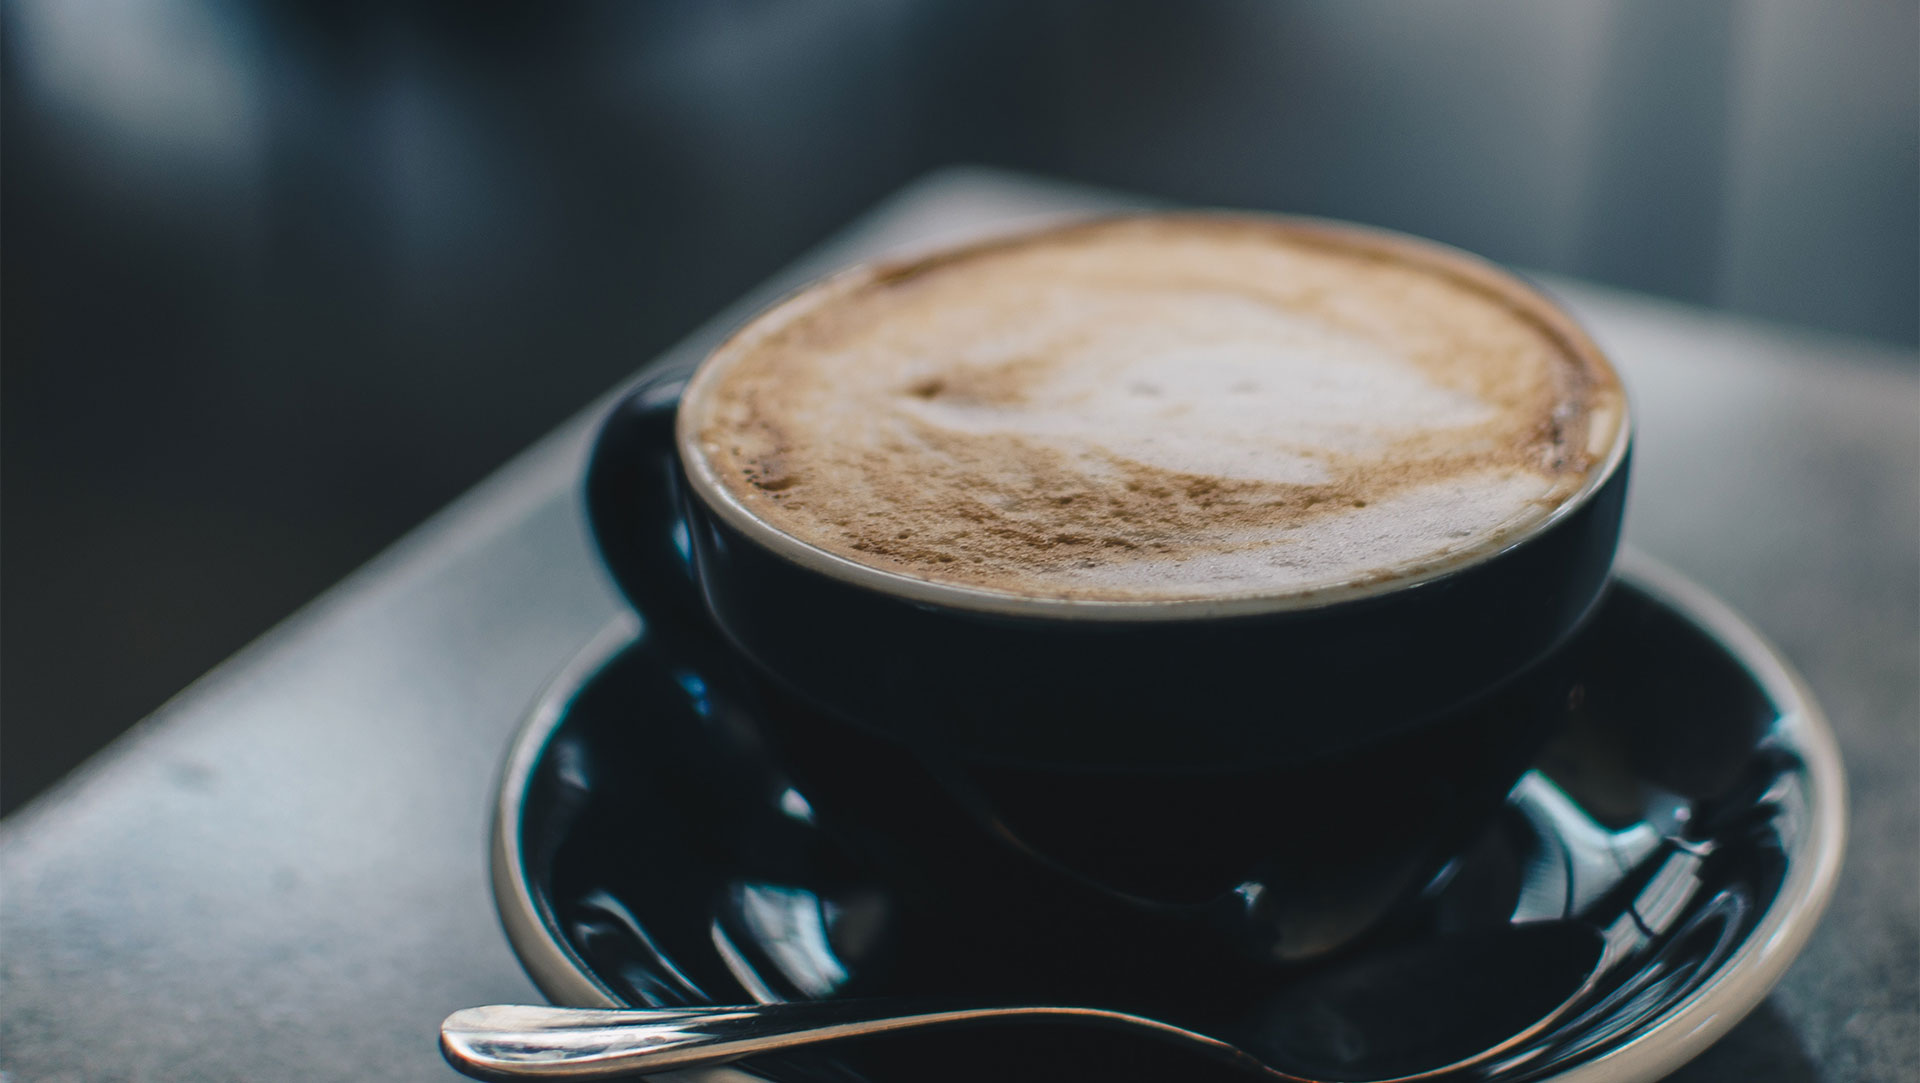 coffee-unsplash_1920x1063.jpg